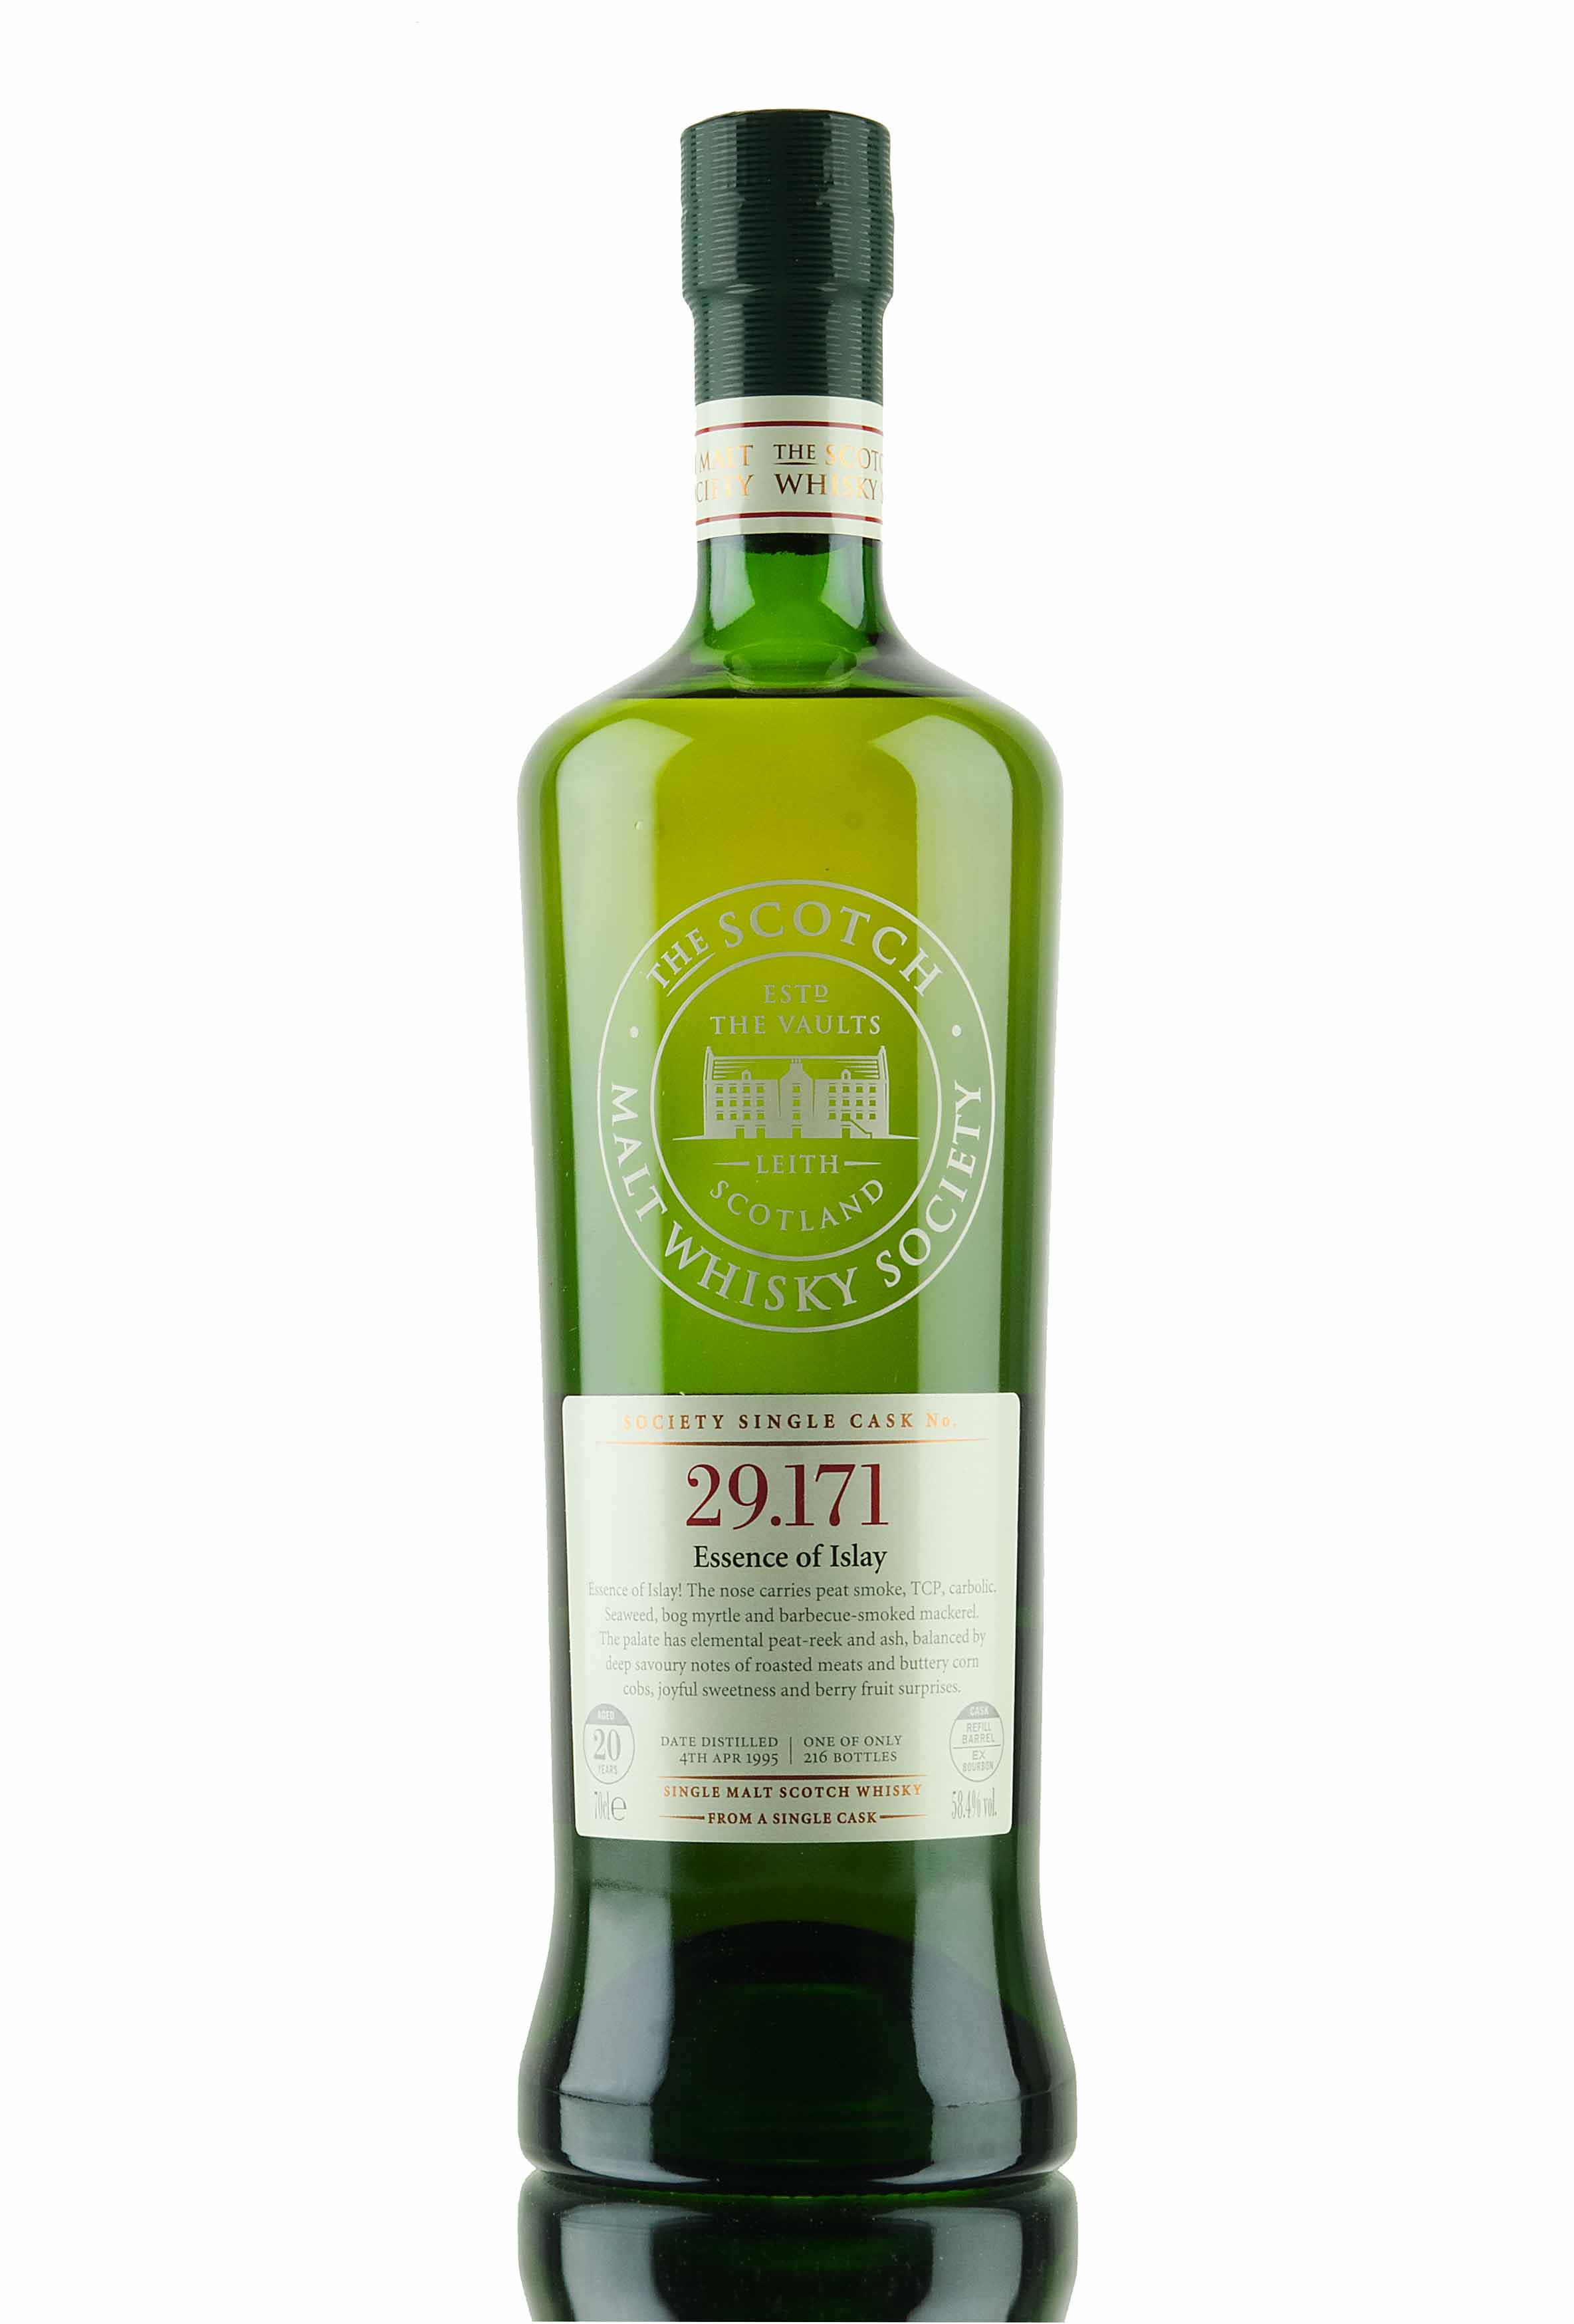 Laphroaig 20 Year Old - 1995 / SMWS 29.171